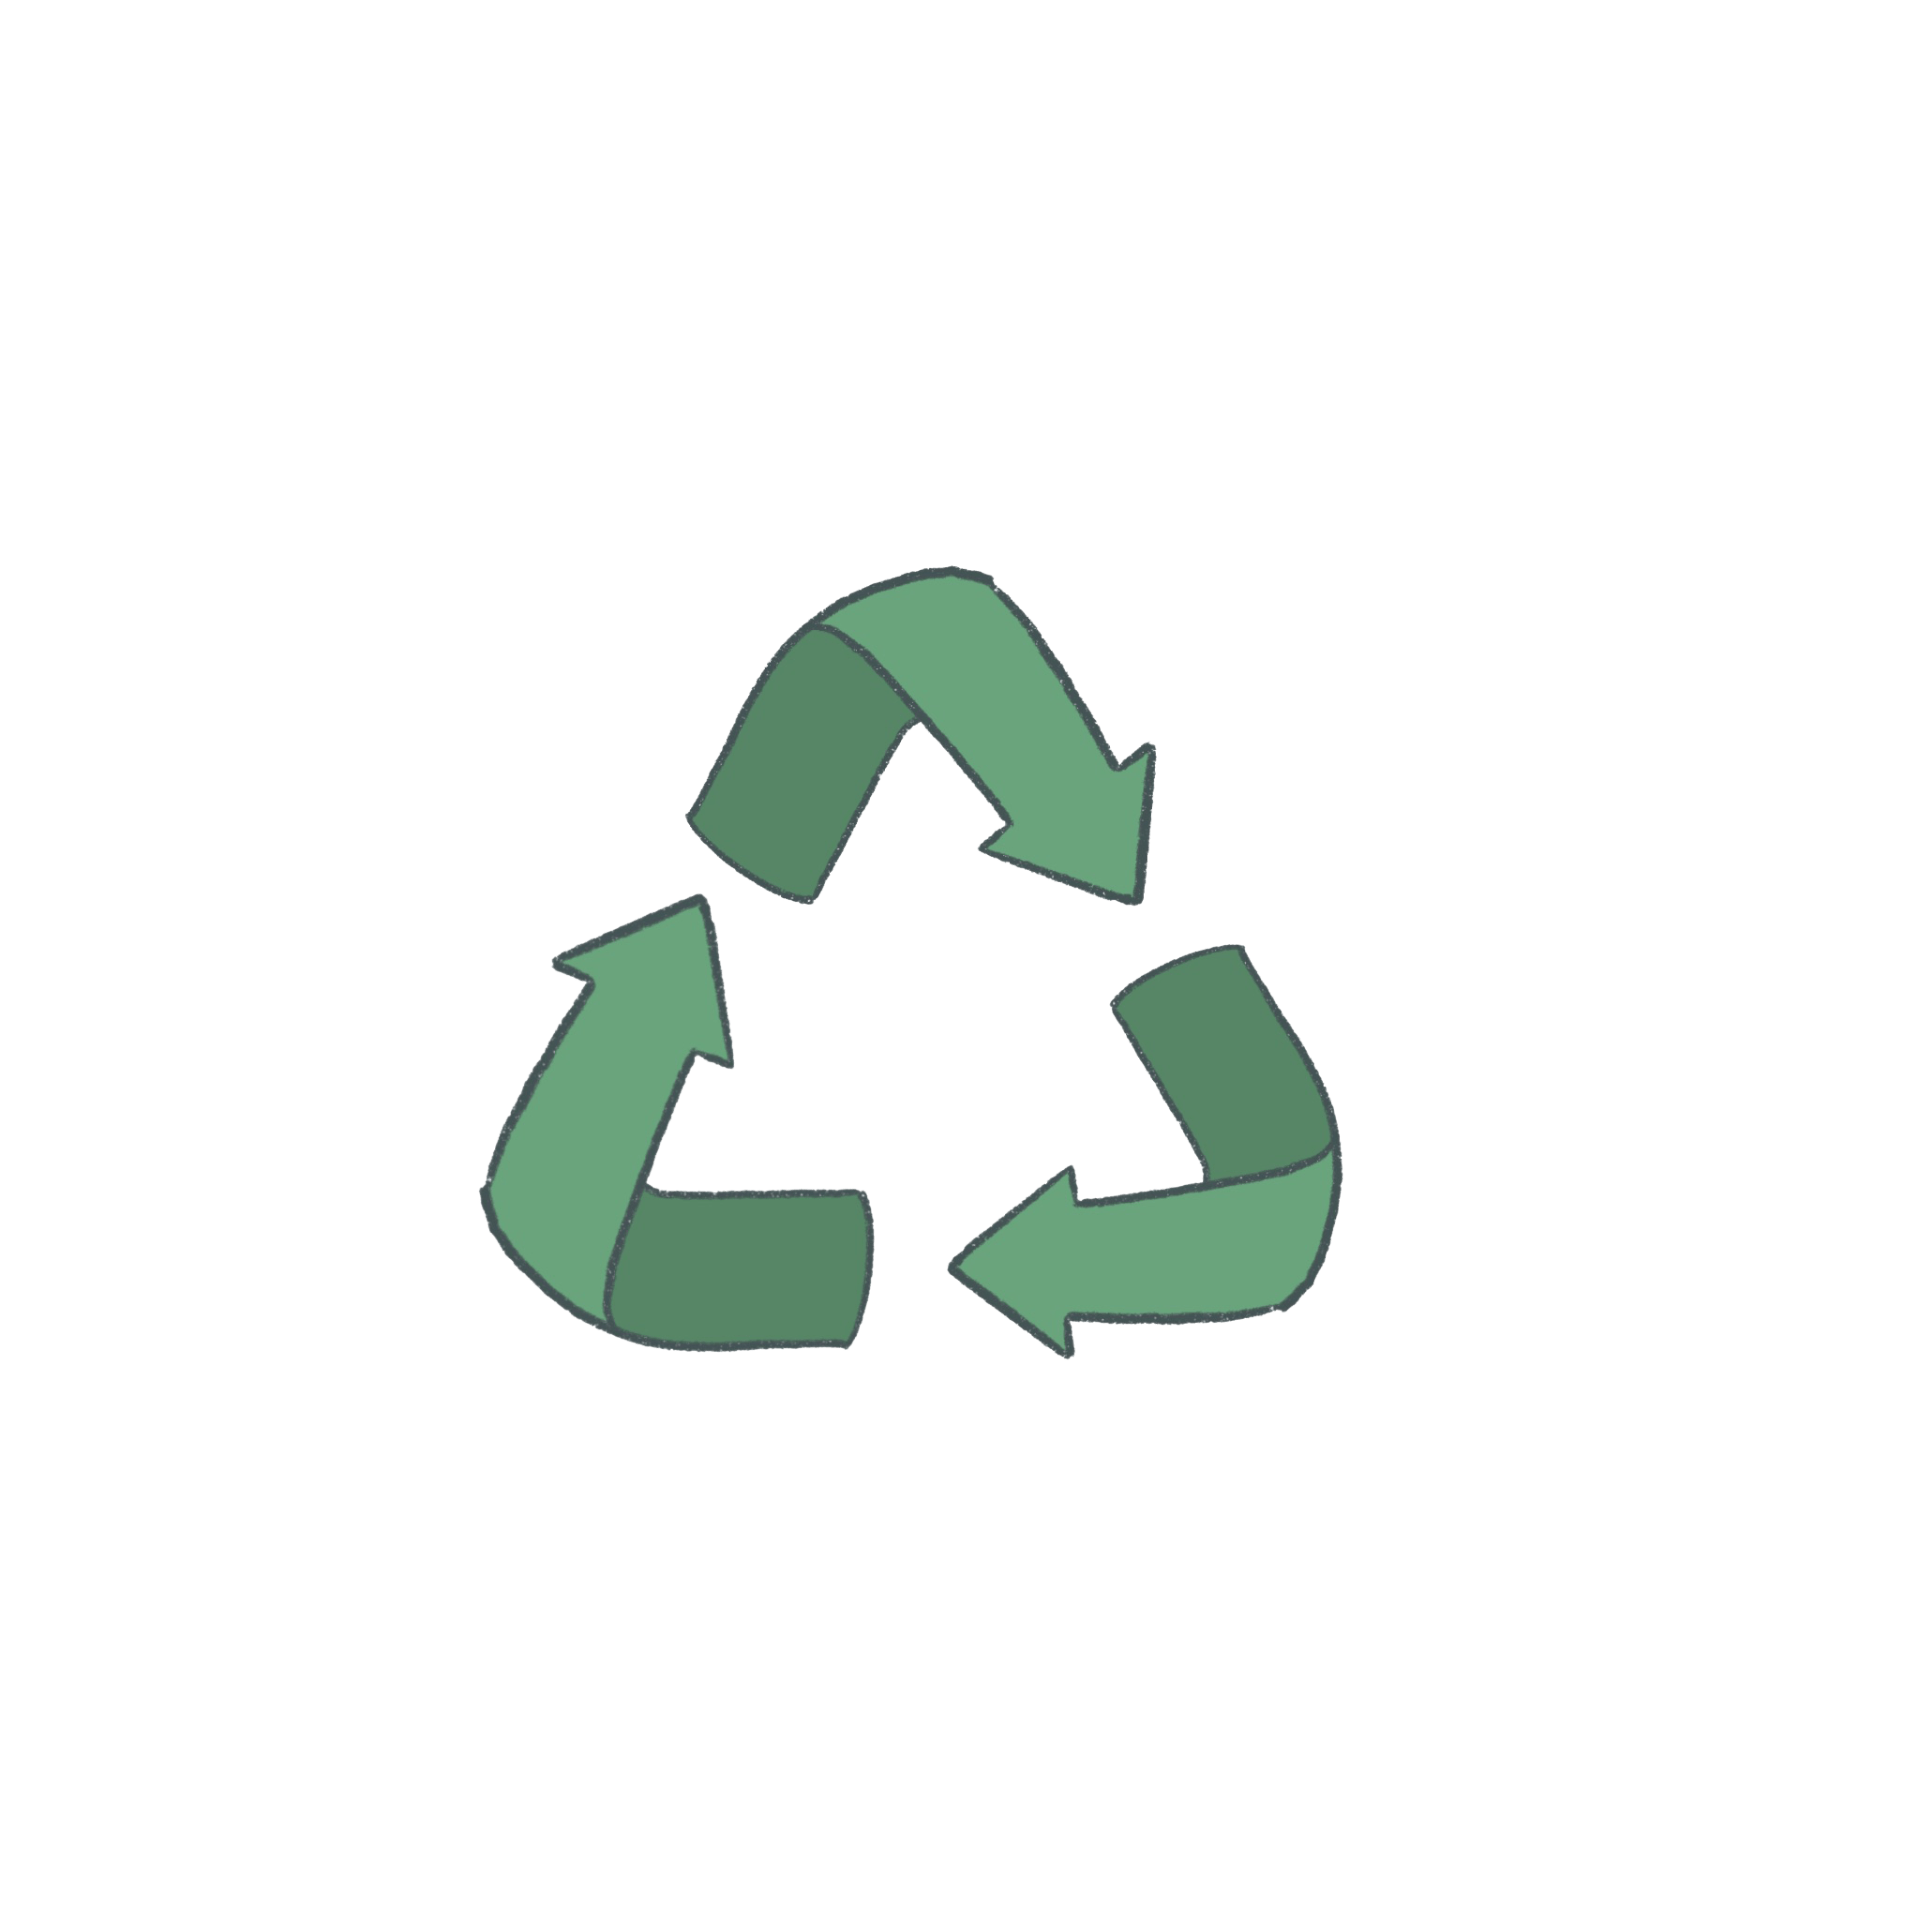 Image of a recycling logo, three green arrows in the shape of a triangle